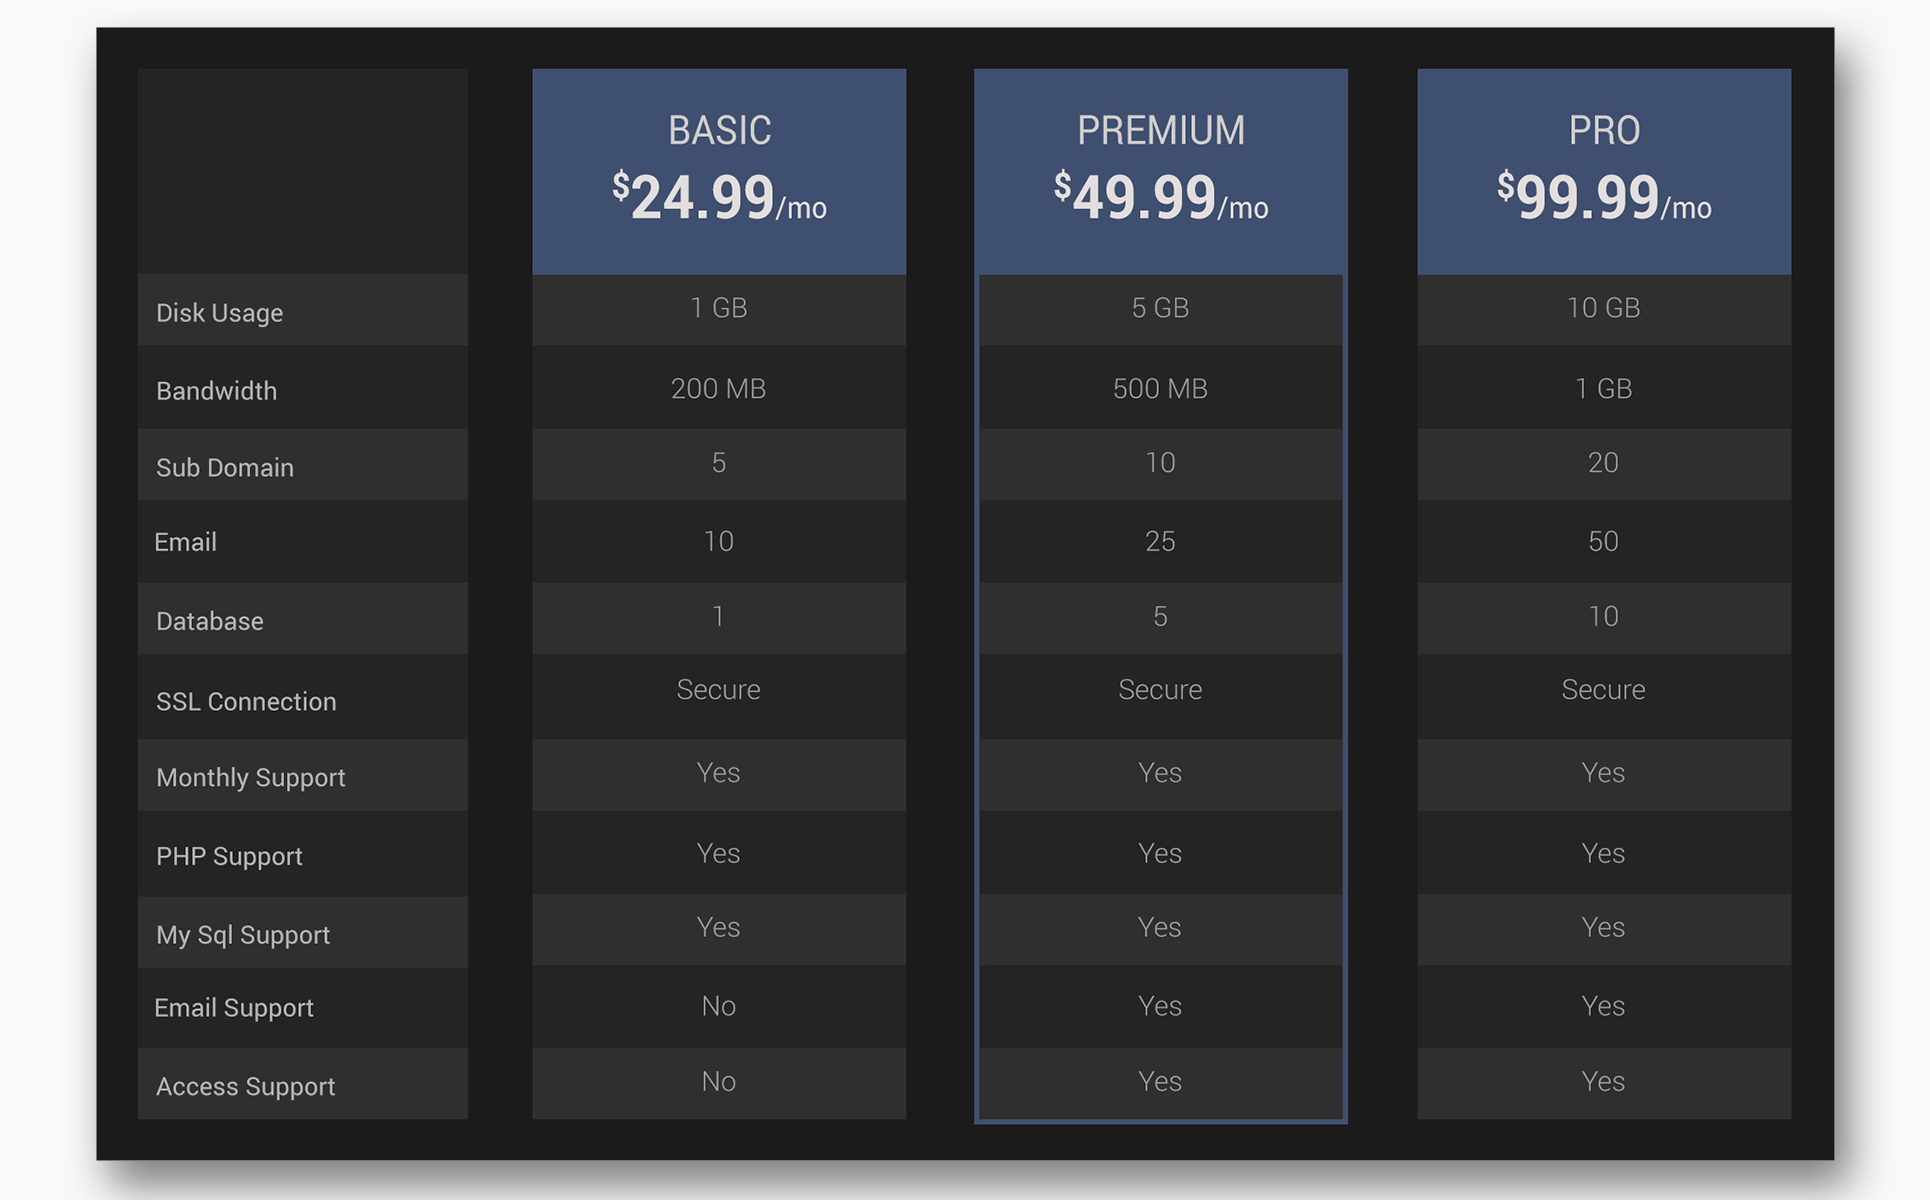 Element – Pricing Chart Infographic Elements